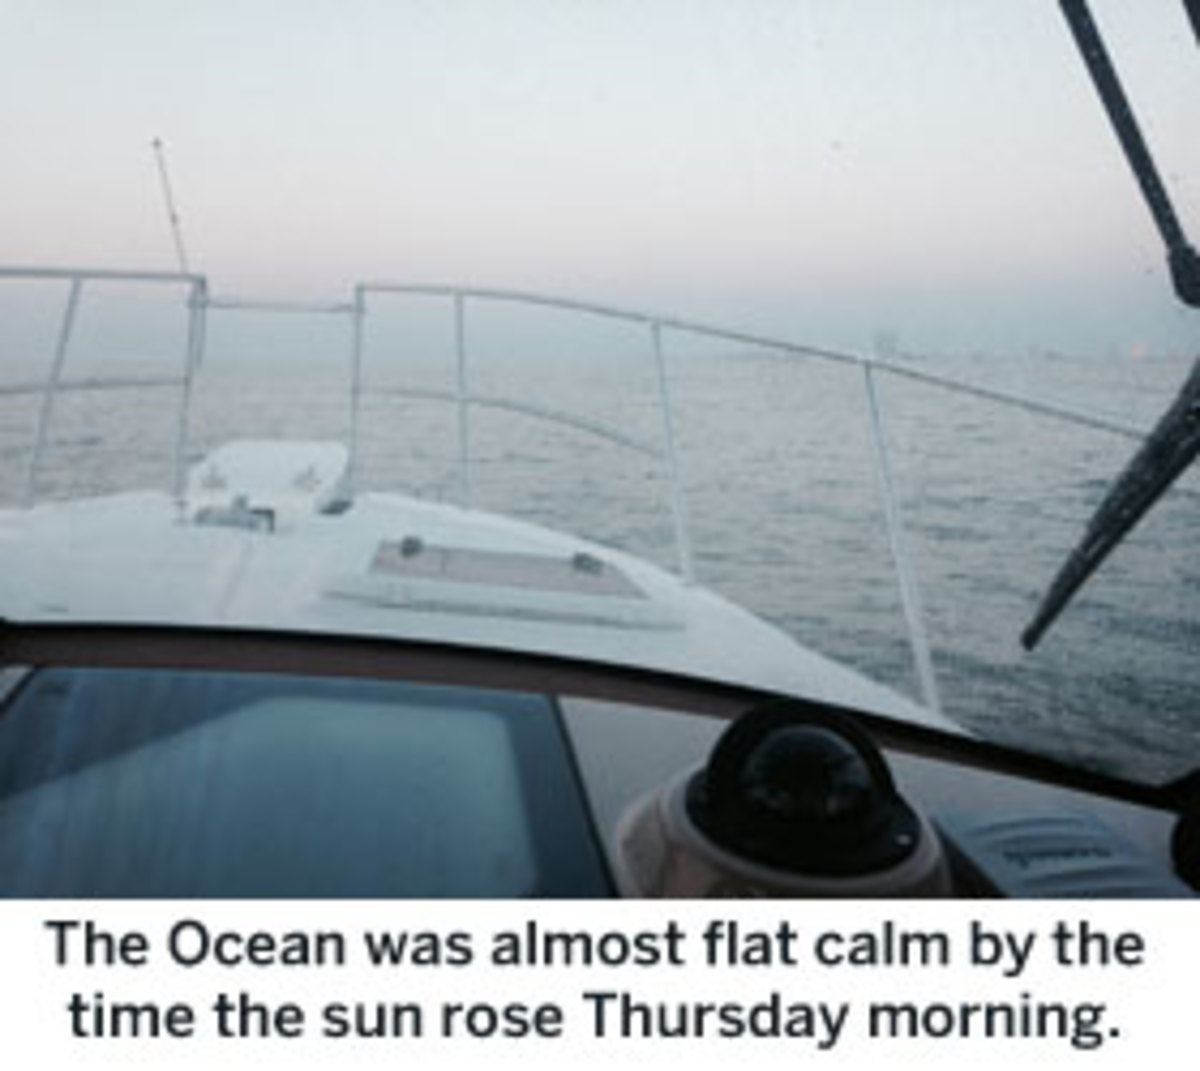 The Ocean was almost flat calm by the time the sun rose Thursday morning.